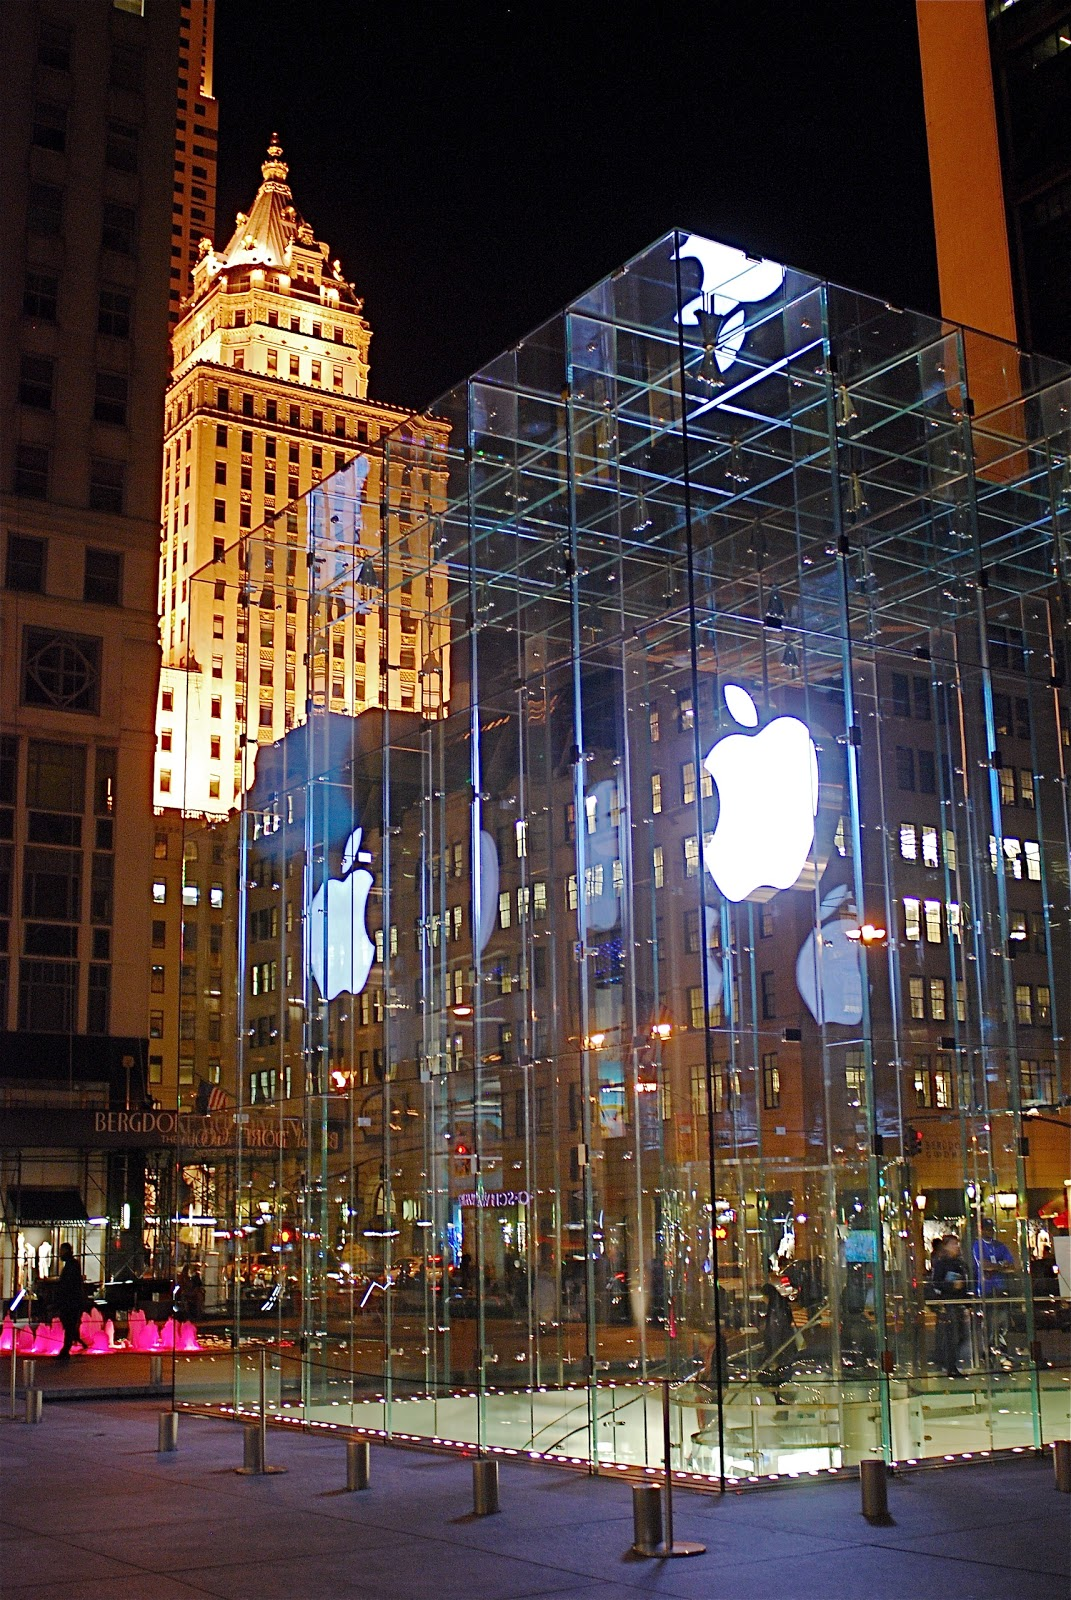 NYC ♥ NYC: The Biggest Apple Store In The Big Apple Never